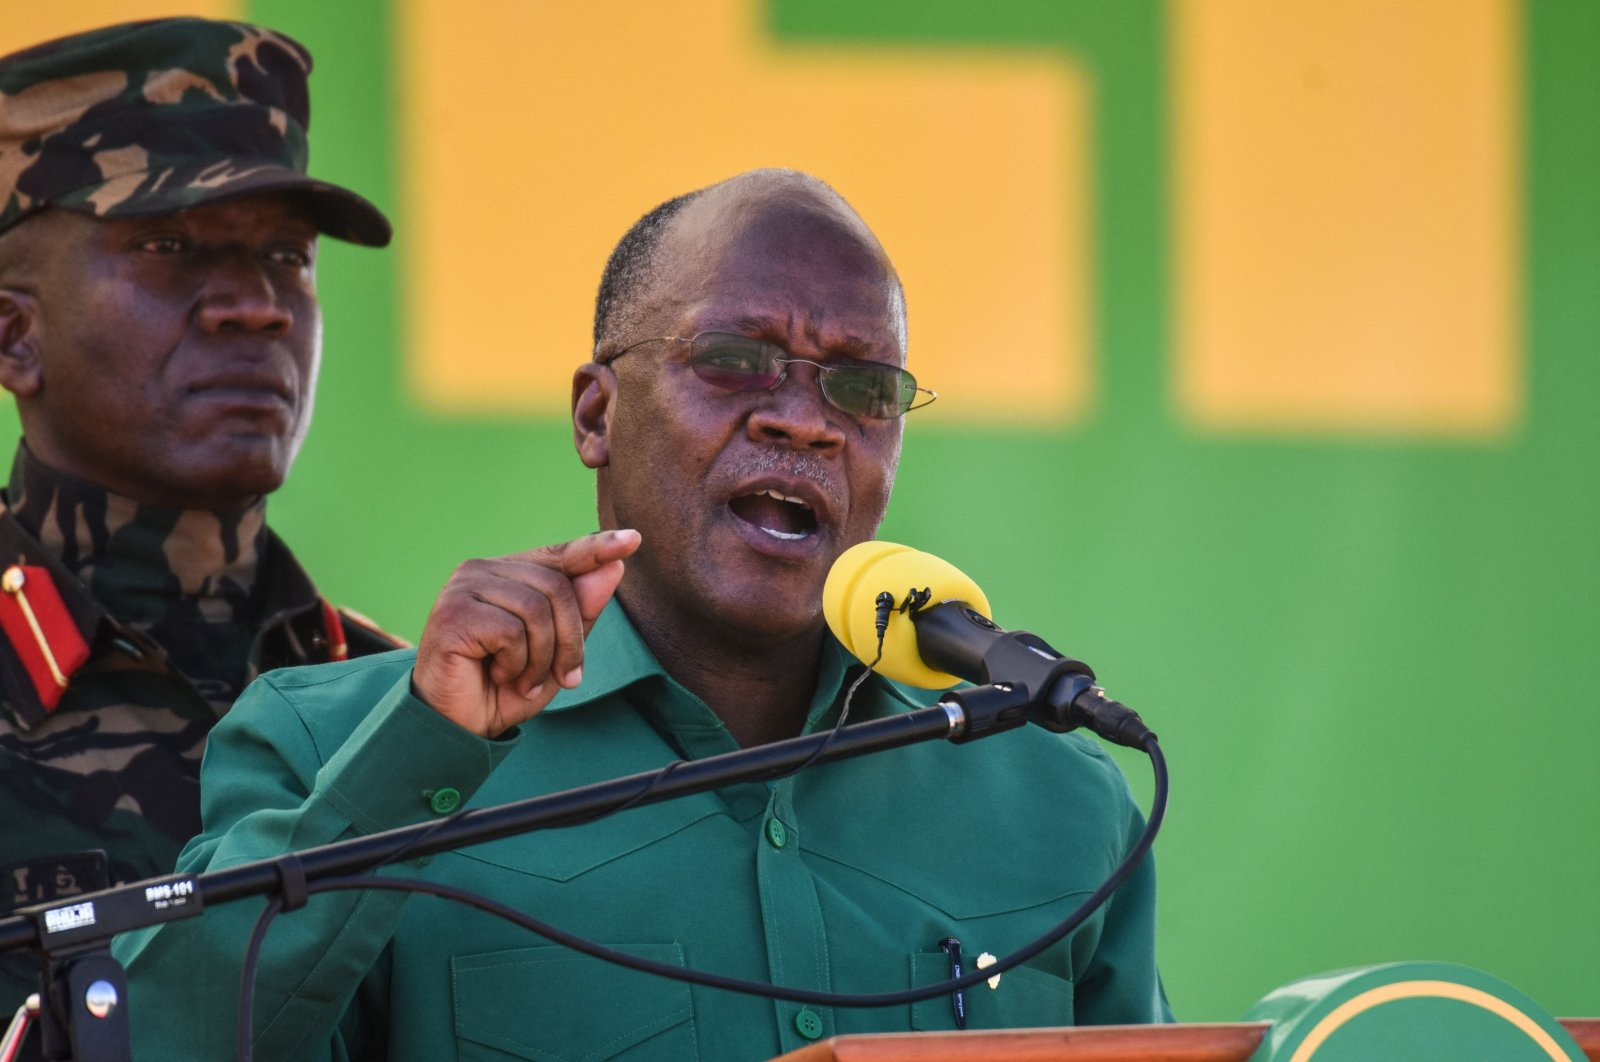 Tanzania's President and presidential candidate of ruling party Chama Cha Mapinduzi (CCM) John Magufuli (R) speaks during the official launch of the party's campaign for the October general election at the Jamhuri stadium in Dodoma, Tanzania, Aug. 29, 2020. (AFP Photo)